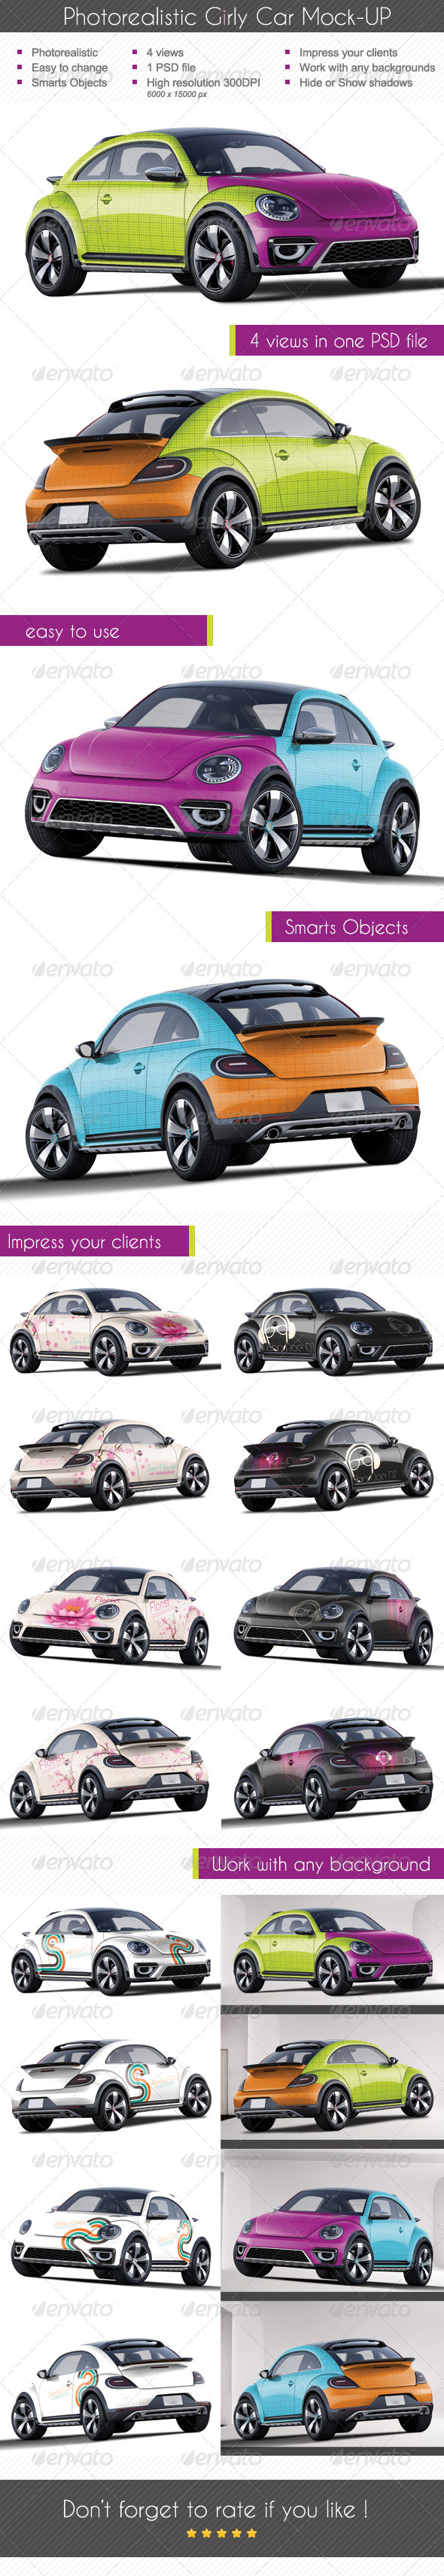 GraphicRiver Photorealistic Girly Car Mock-up 7360817